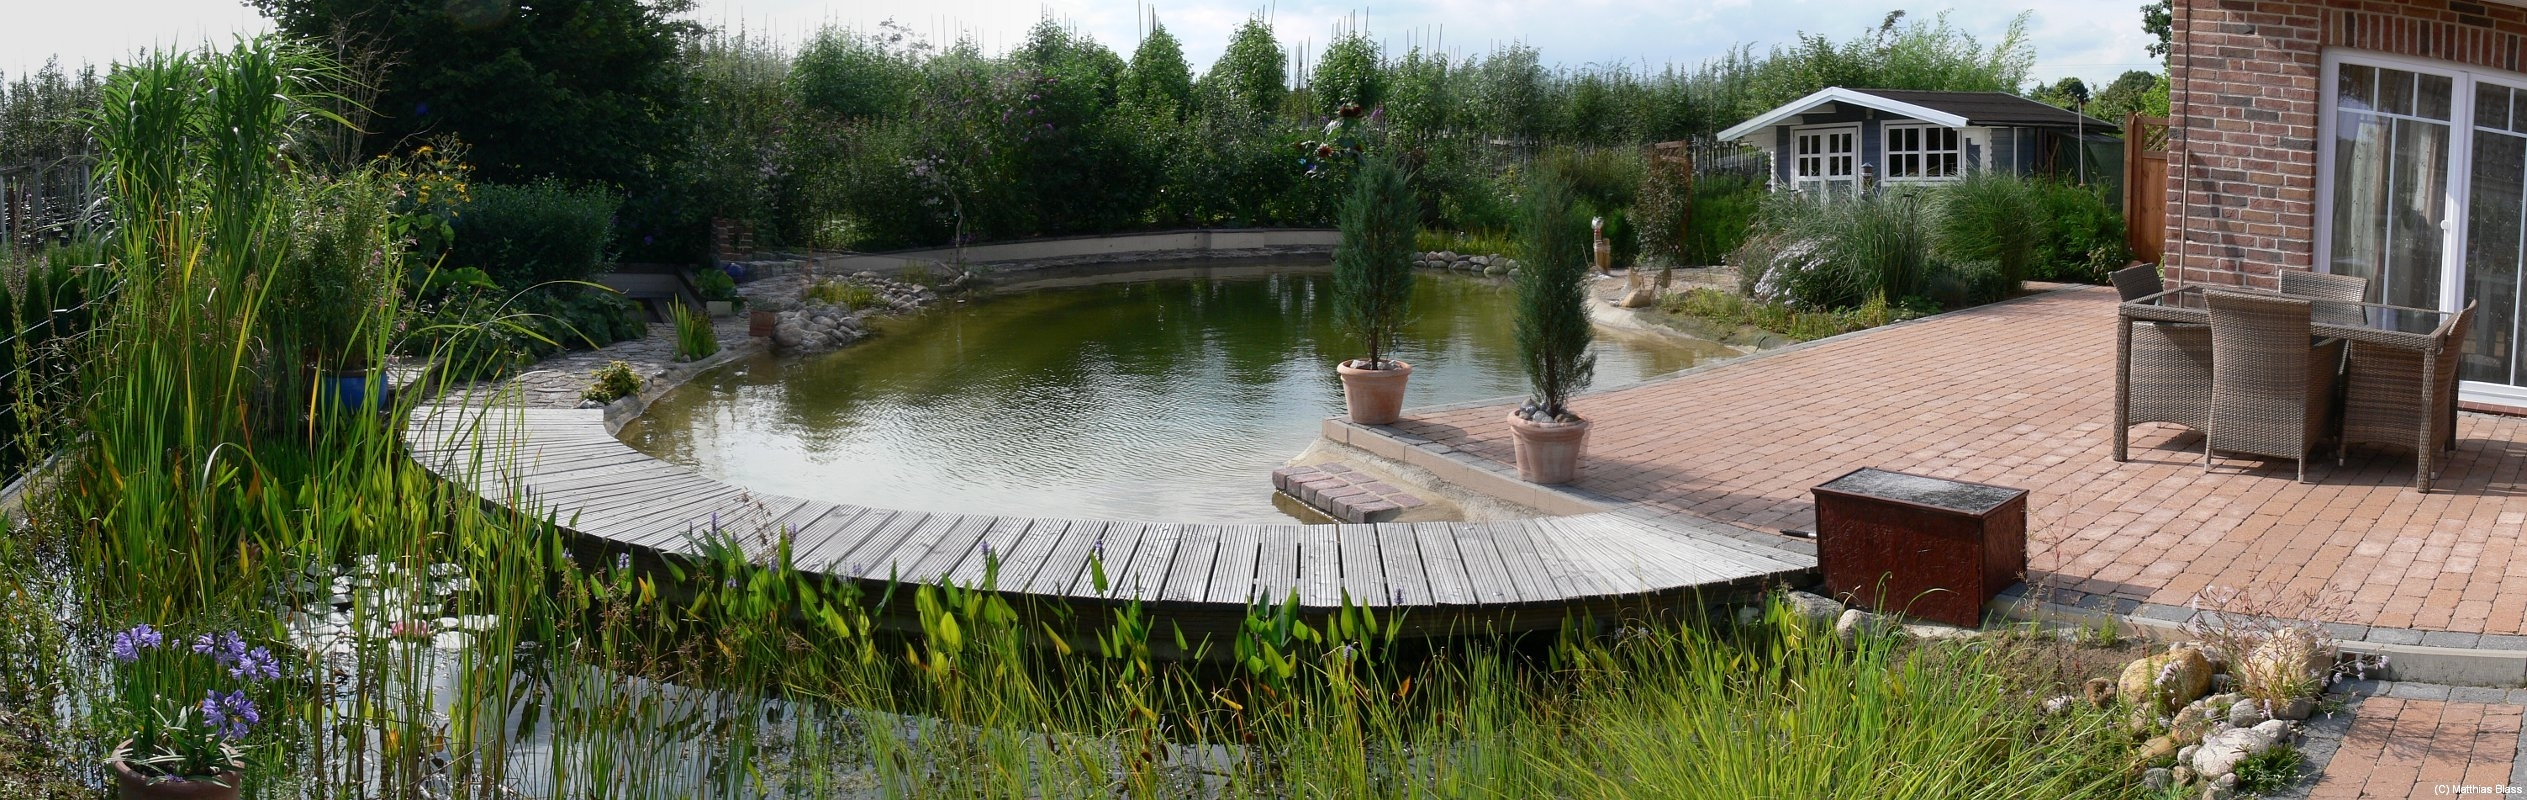 Pool Im Garten Forum Pool Im Garten Eingraben Choosing The Perfect Pool From